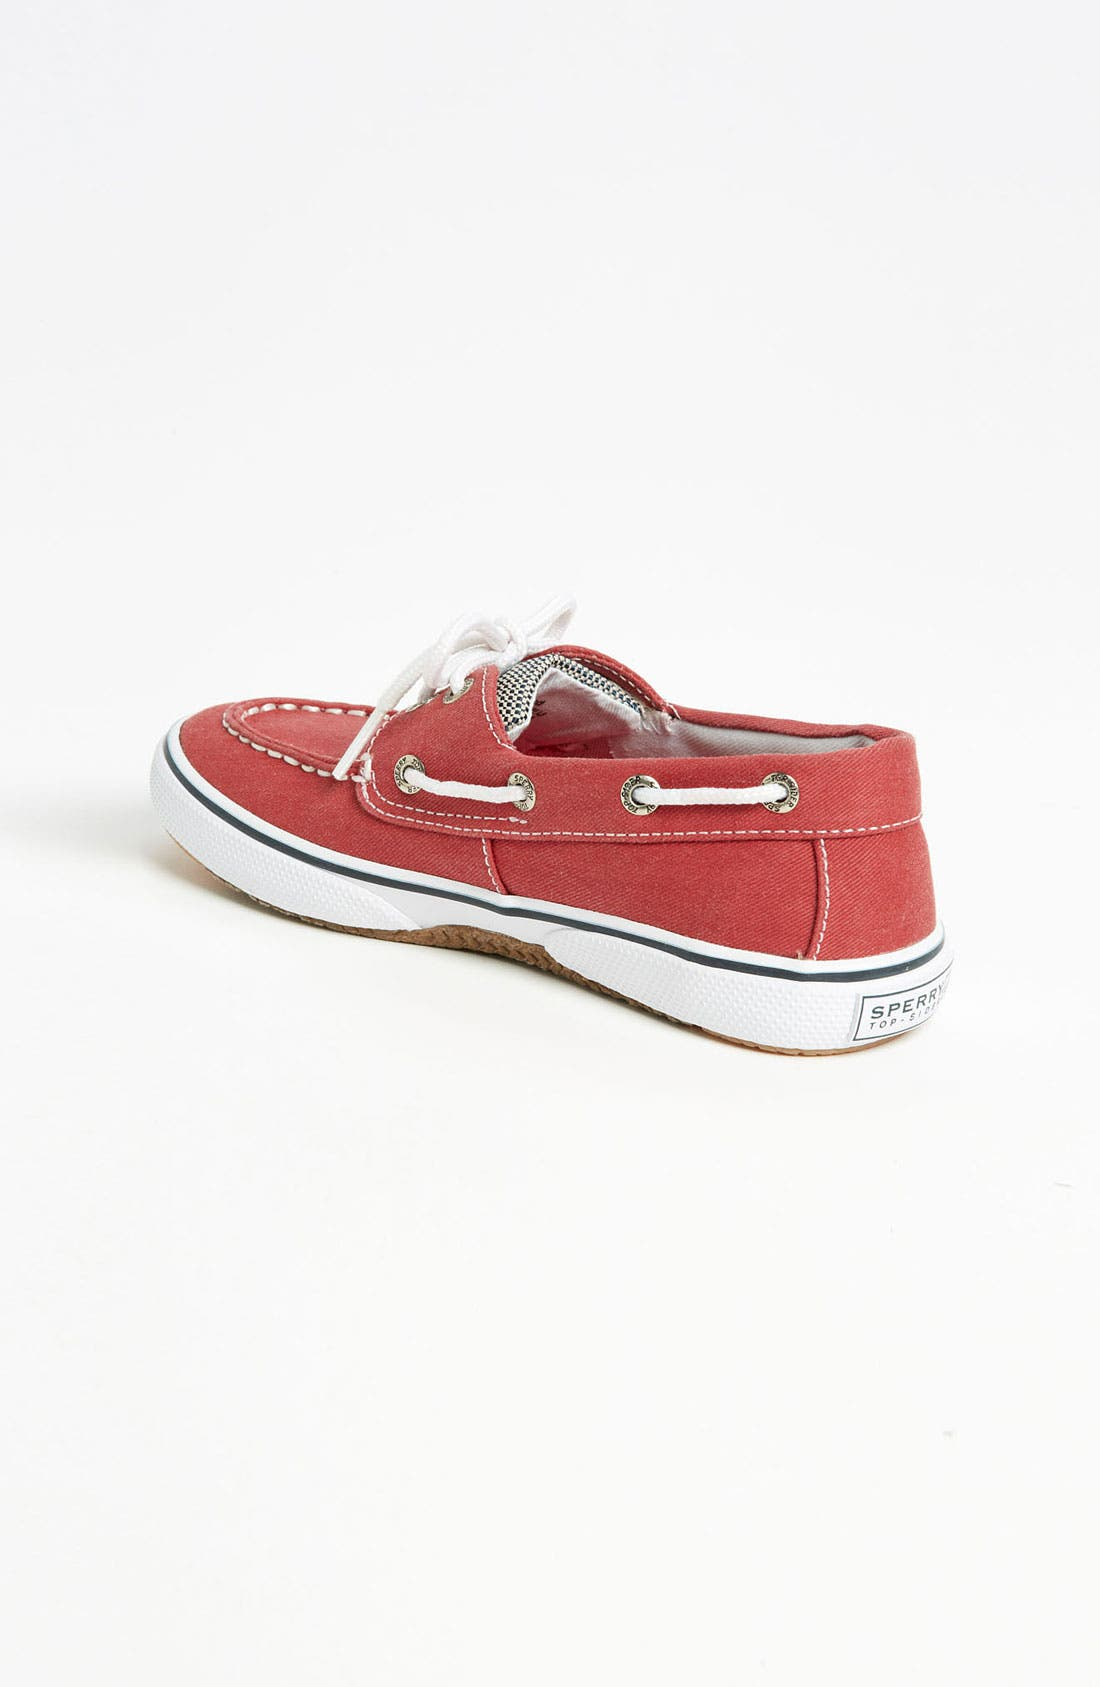 Alternate Image 2  - Sperry Top-Sider® Kids 'Halyard' Boat Shoe (Walker, Toddler, Little Kid & Big Kid)